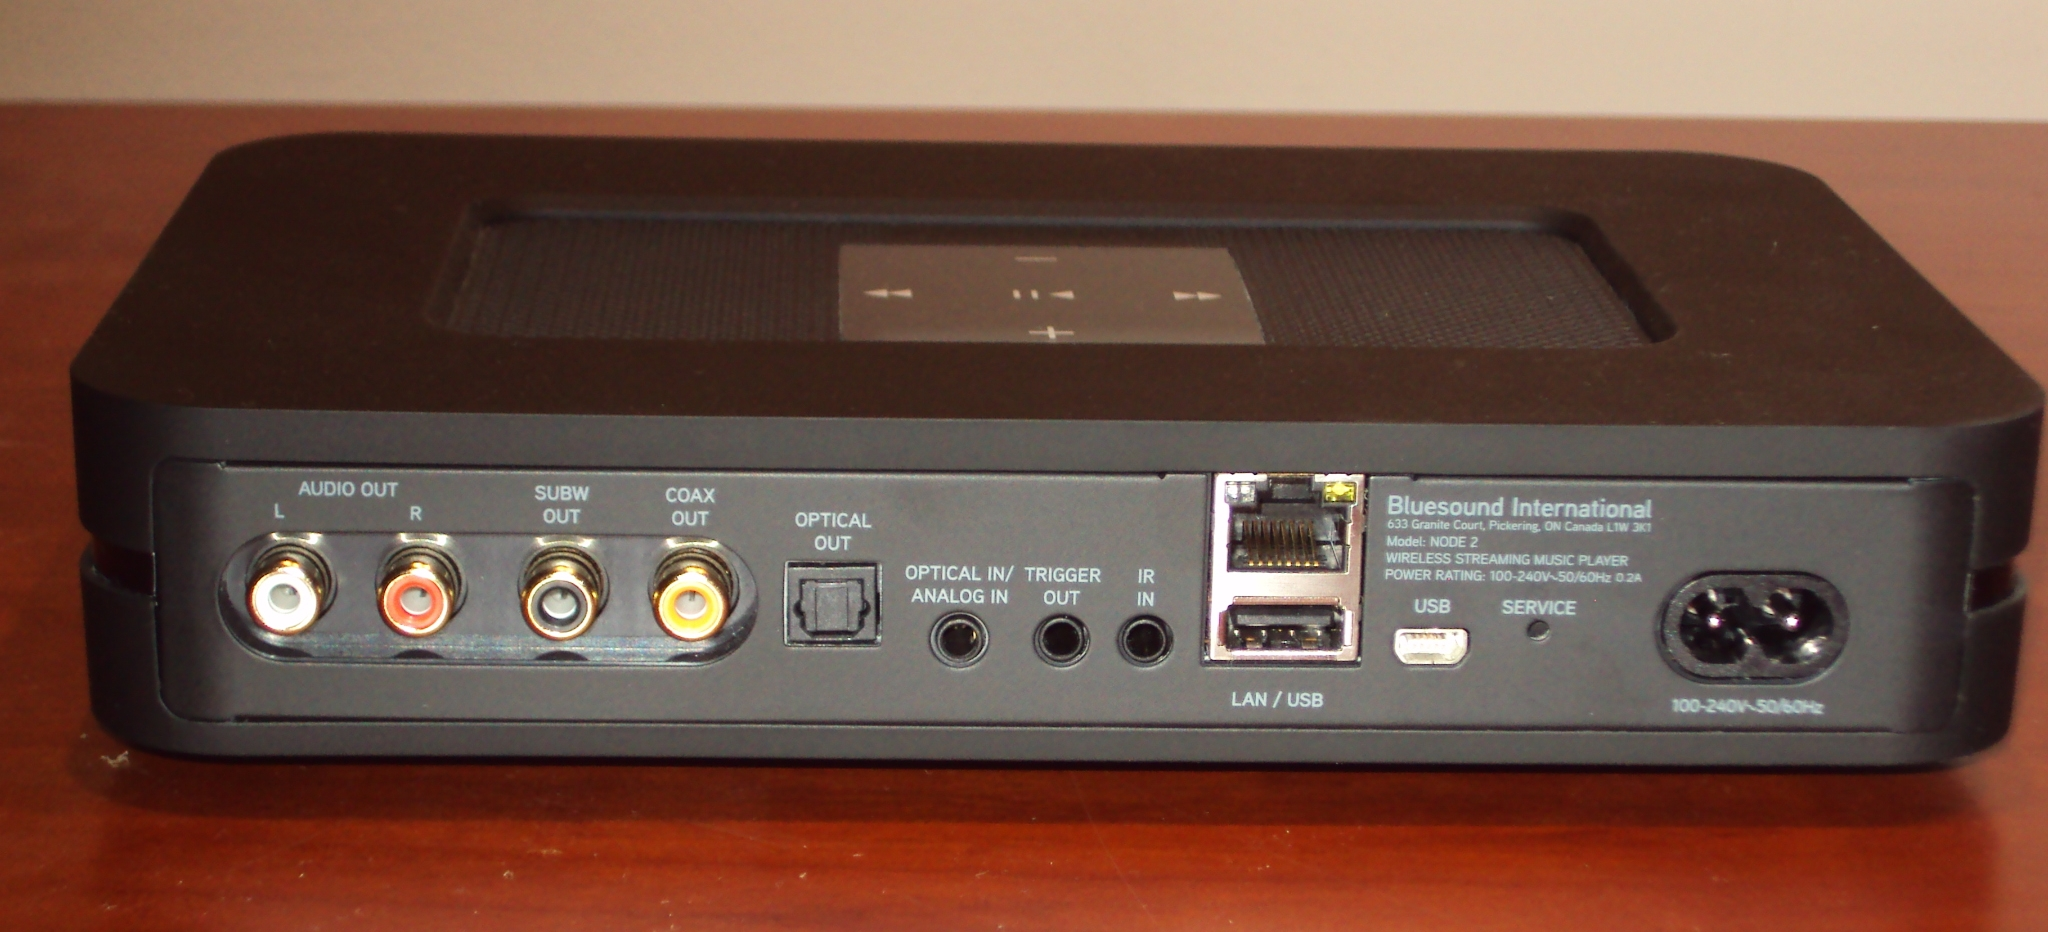 bluesound node 2 back panel